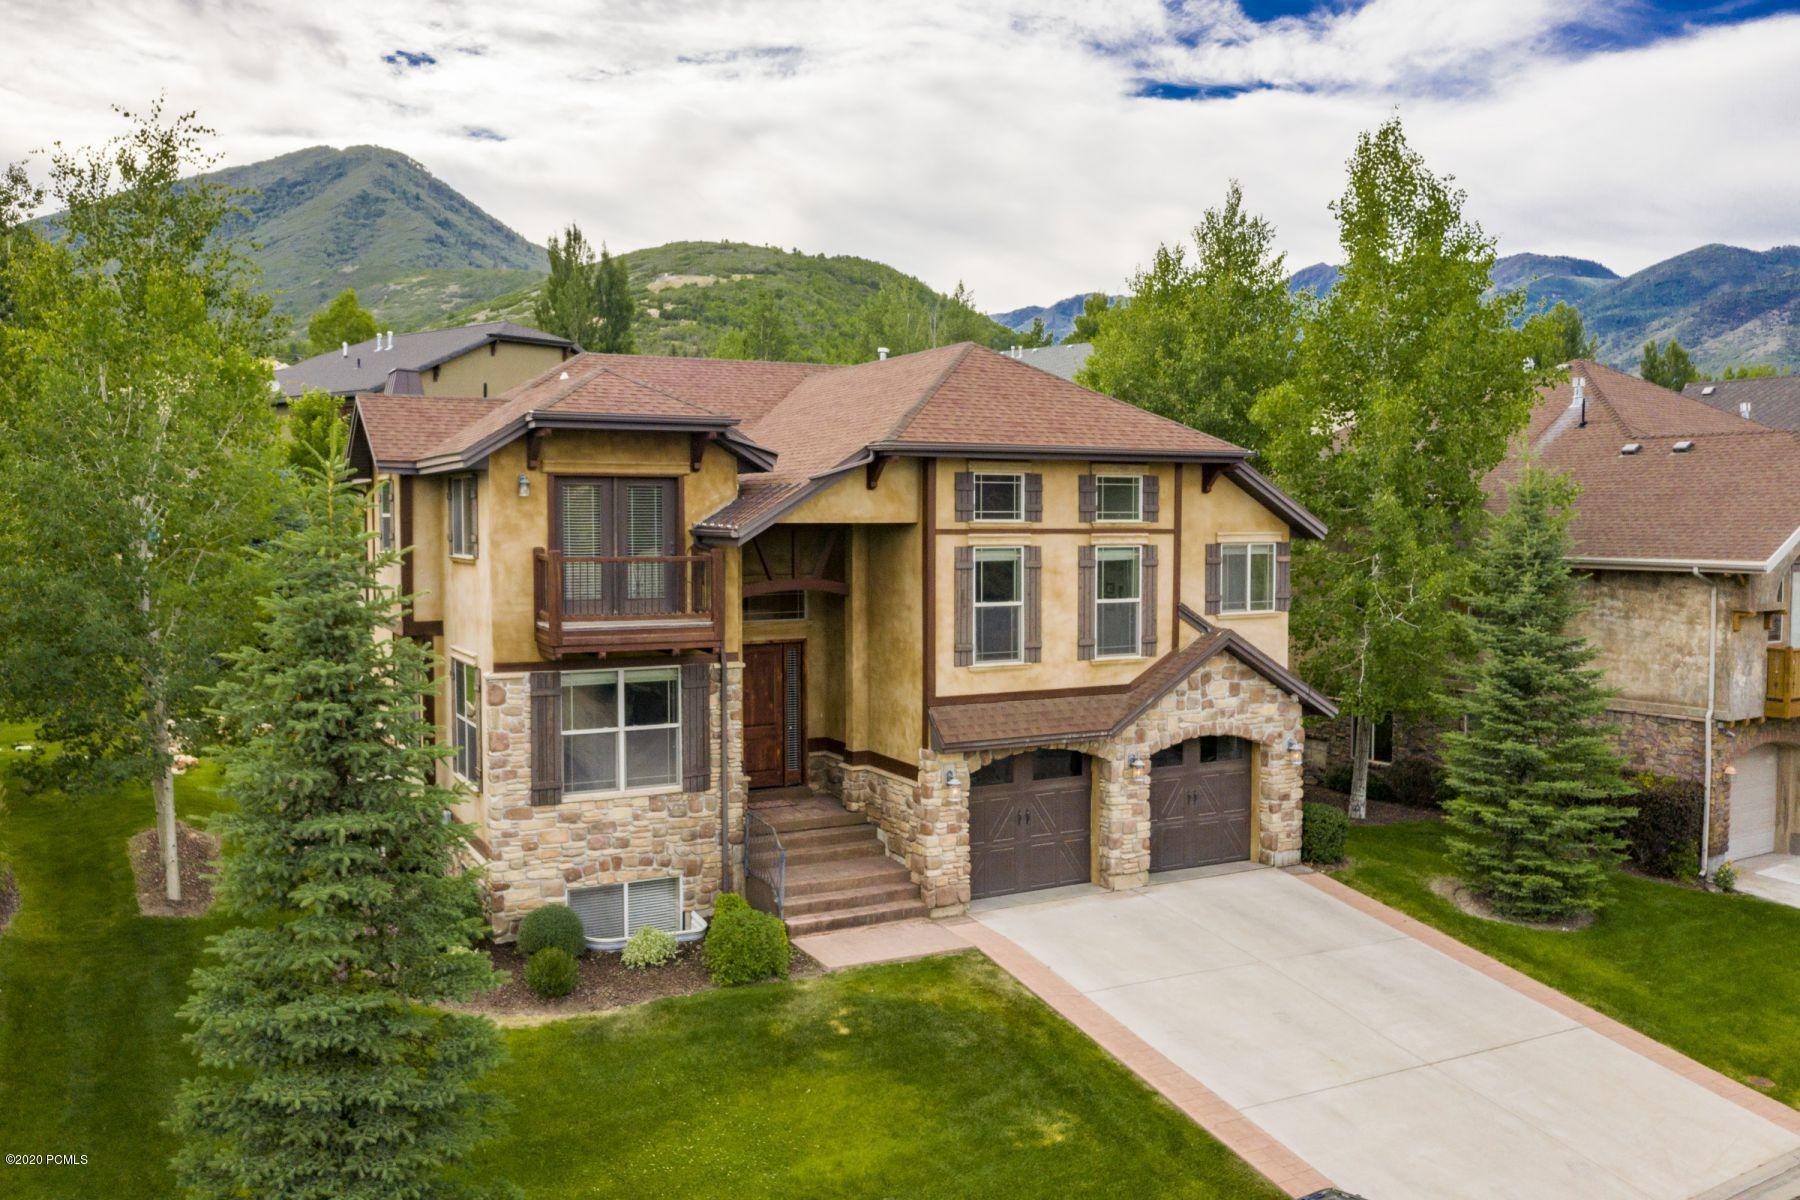 1155 Cottage Way, Midway, Utah 84049, 6 Bedrooms Bedrooms, ,6 BathroomsBathrooms,Single Family,For Sale,Cottage,12002416